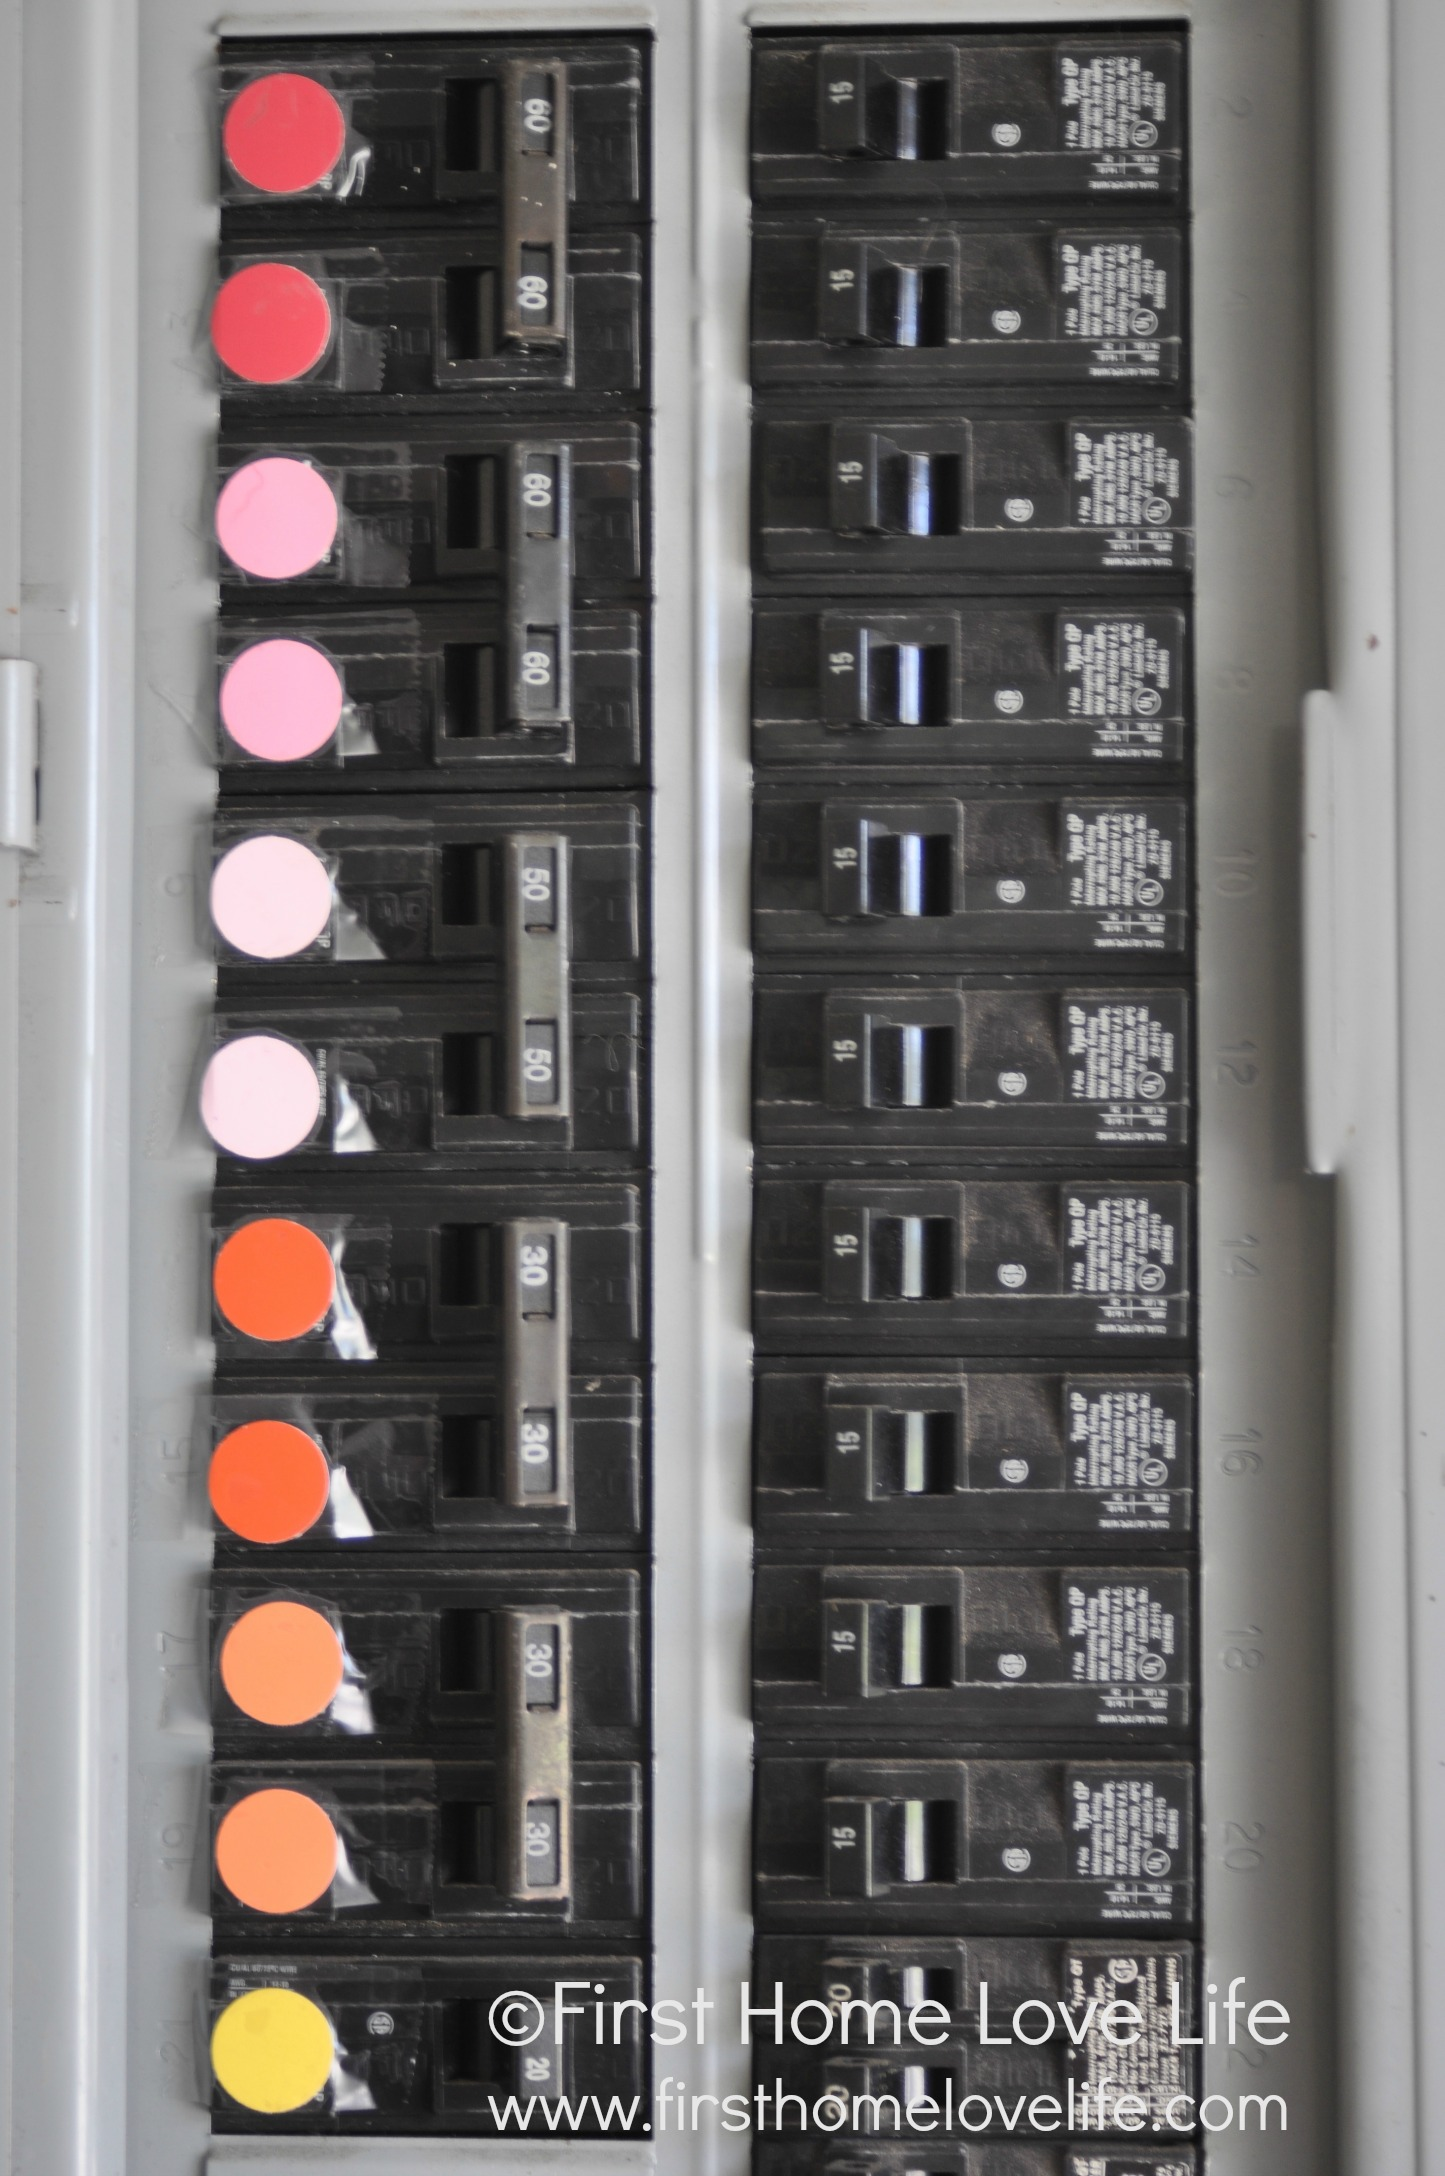 Color Coding Your Circuit Breaker Box First Home Love Life Old Fashion Fuse Doublebox